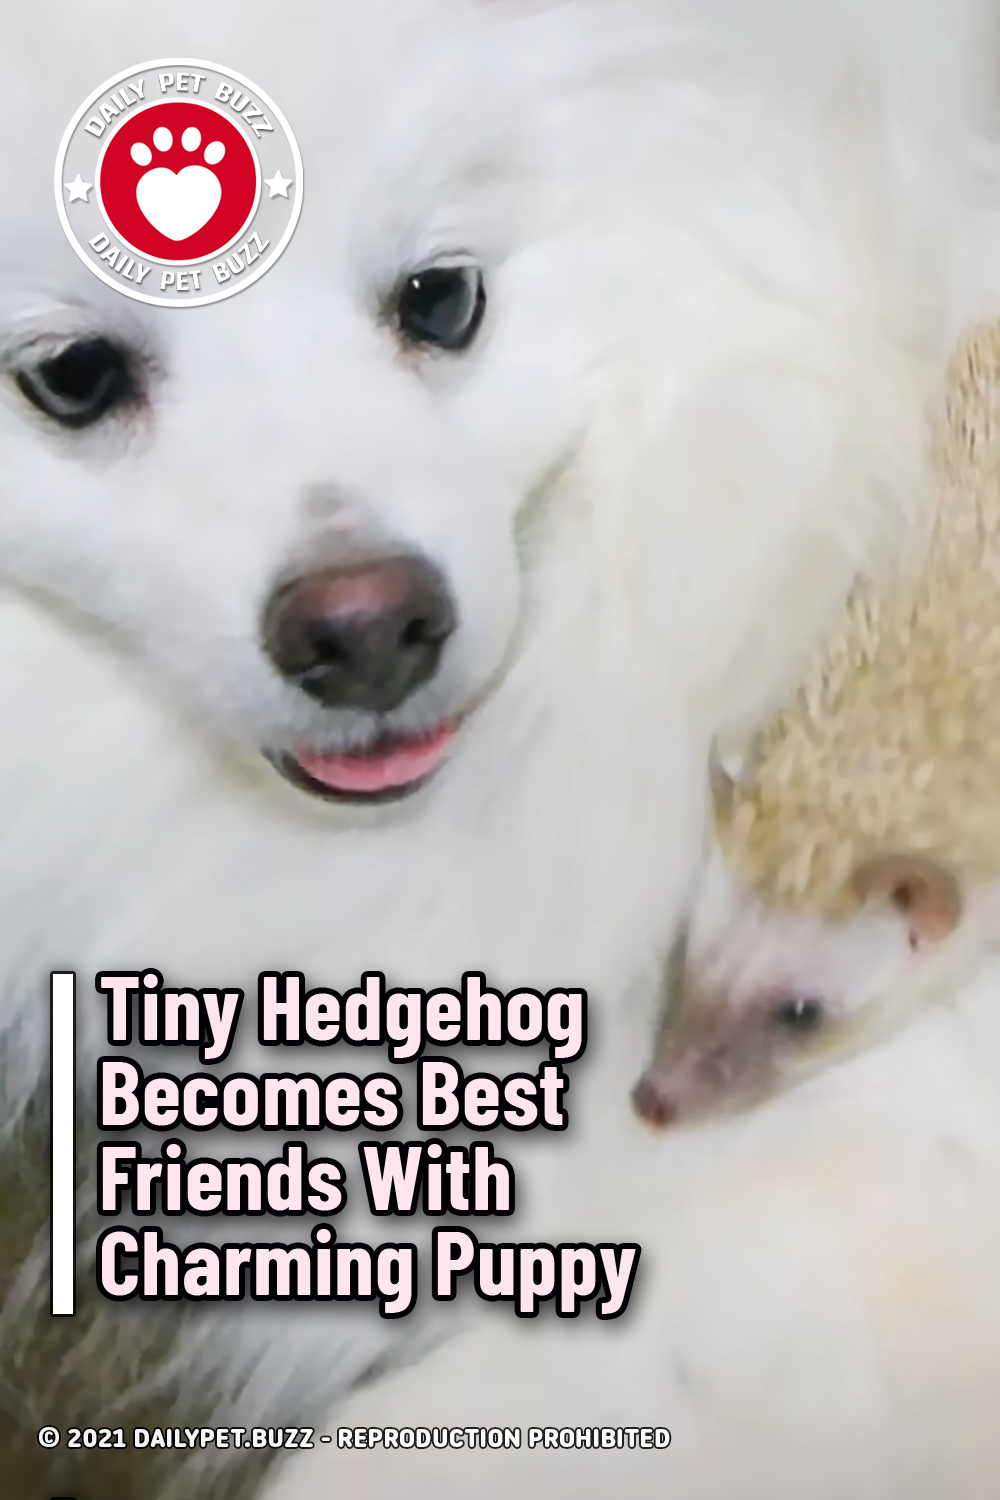 Tiny Hedgehog Becomes Best Friends With Charming Puppy